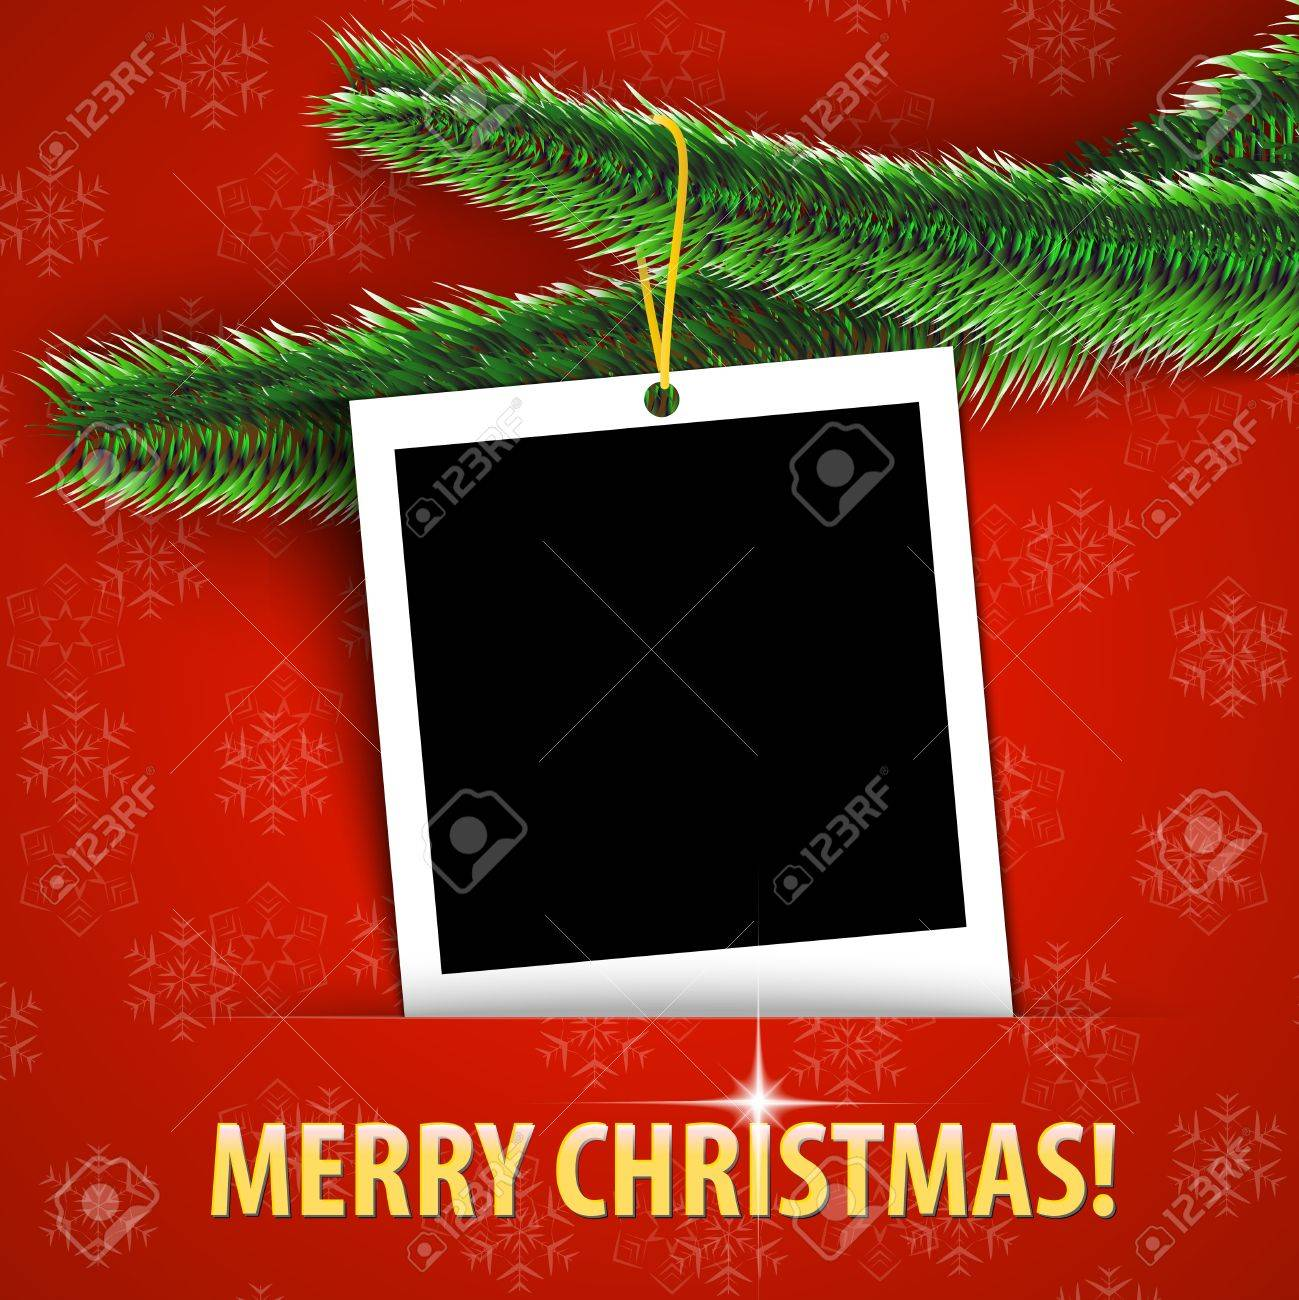 Merry Christmas Greeting Card With Blank Photo Frame Hanging ...